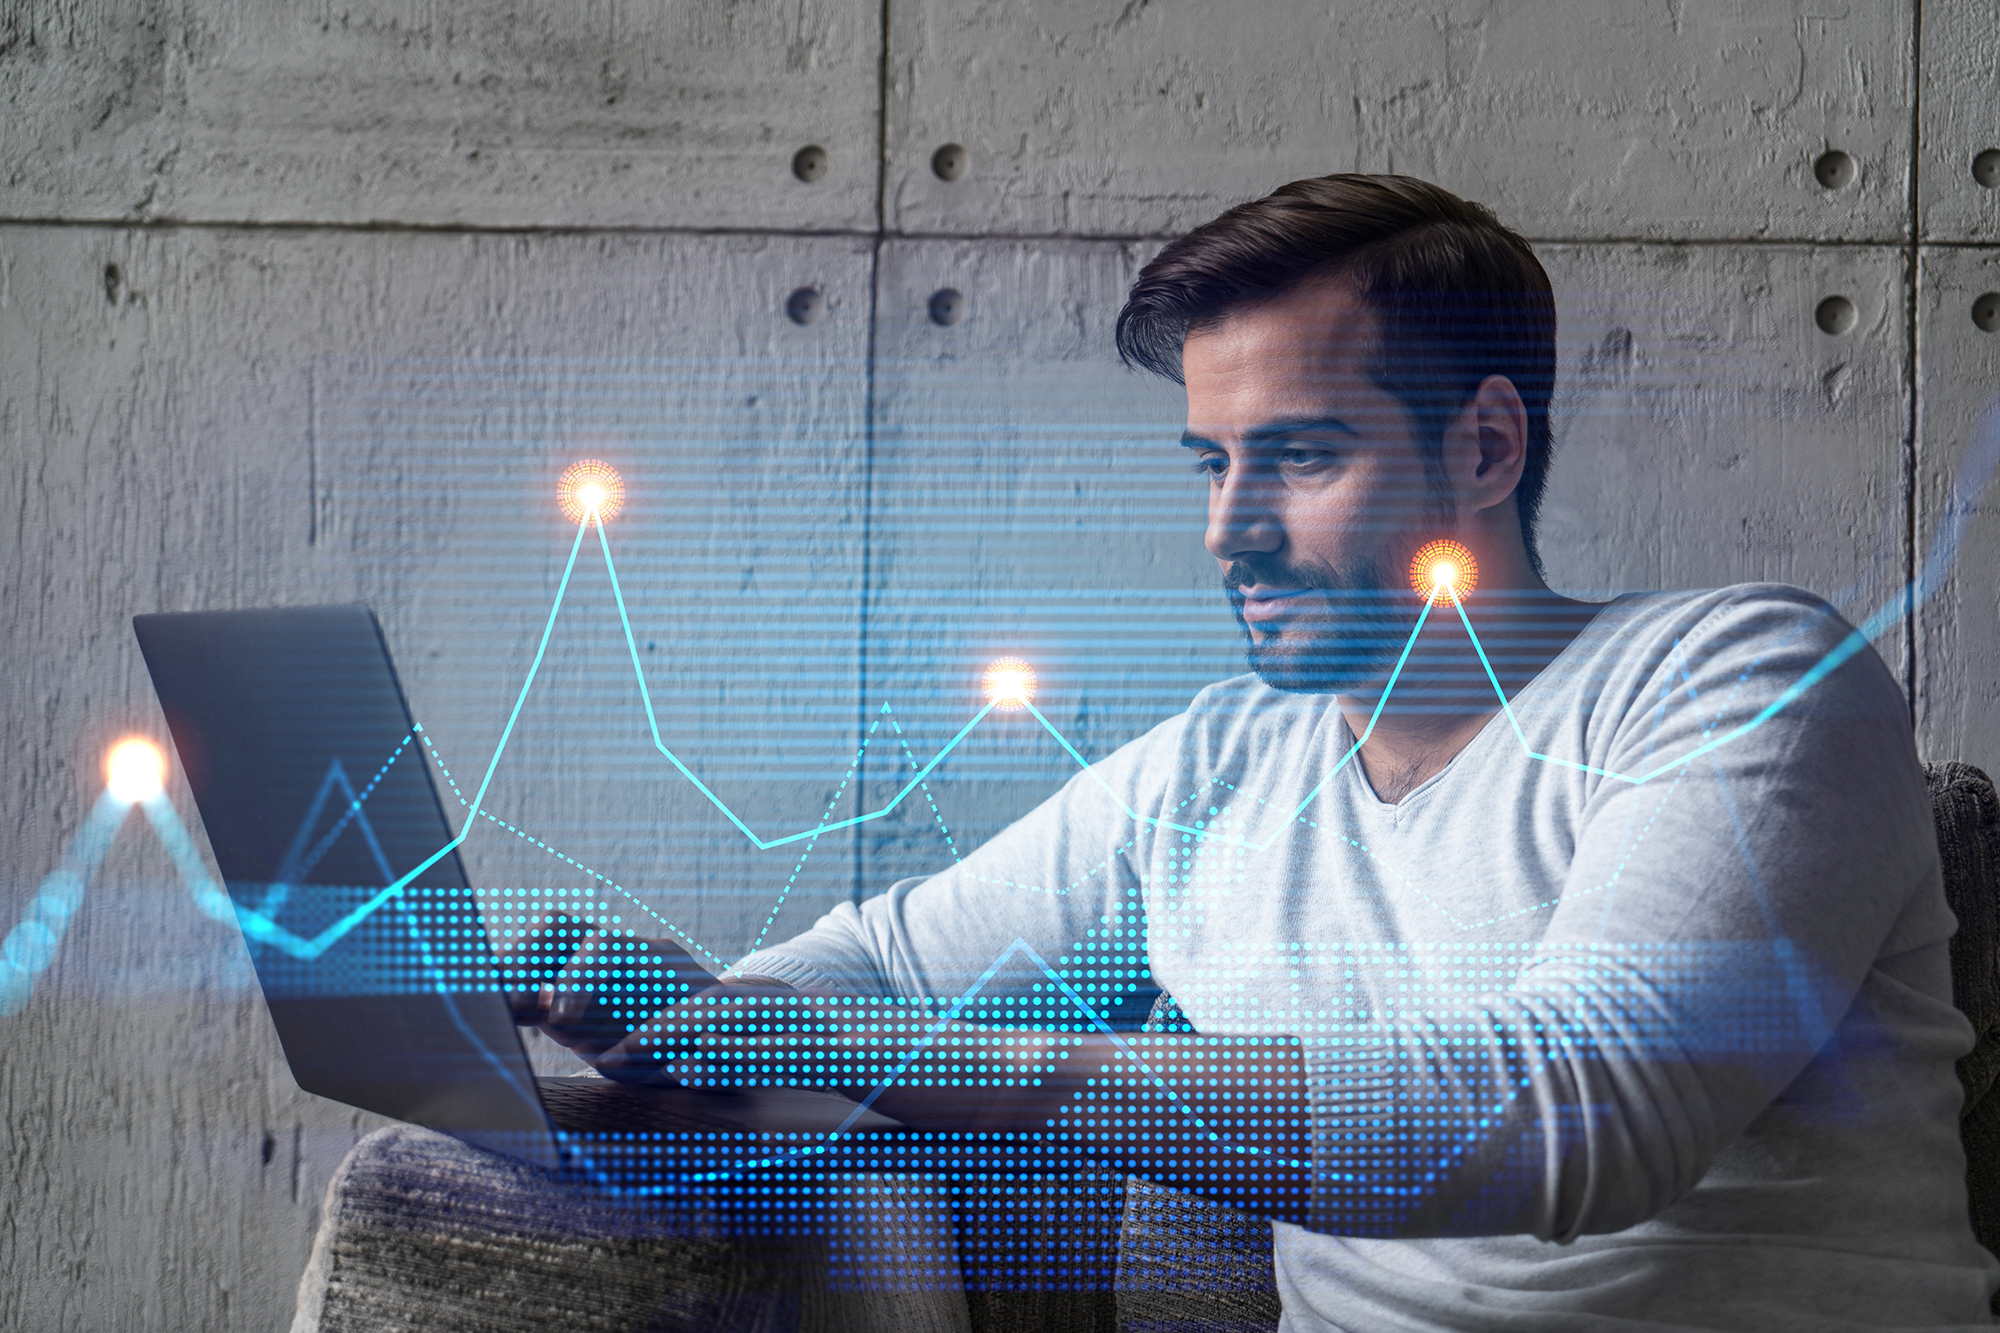 Behavioral analytics is a term used in marketing to describe the analysis of consumer behavior patterns that informs how to market or deliver an action in a way that increases the odds of adoption.